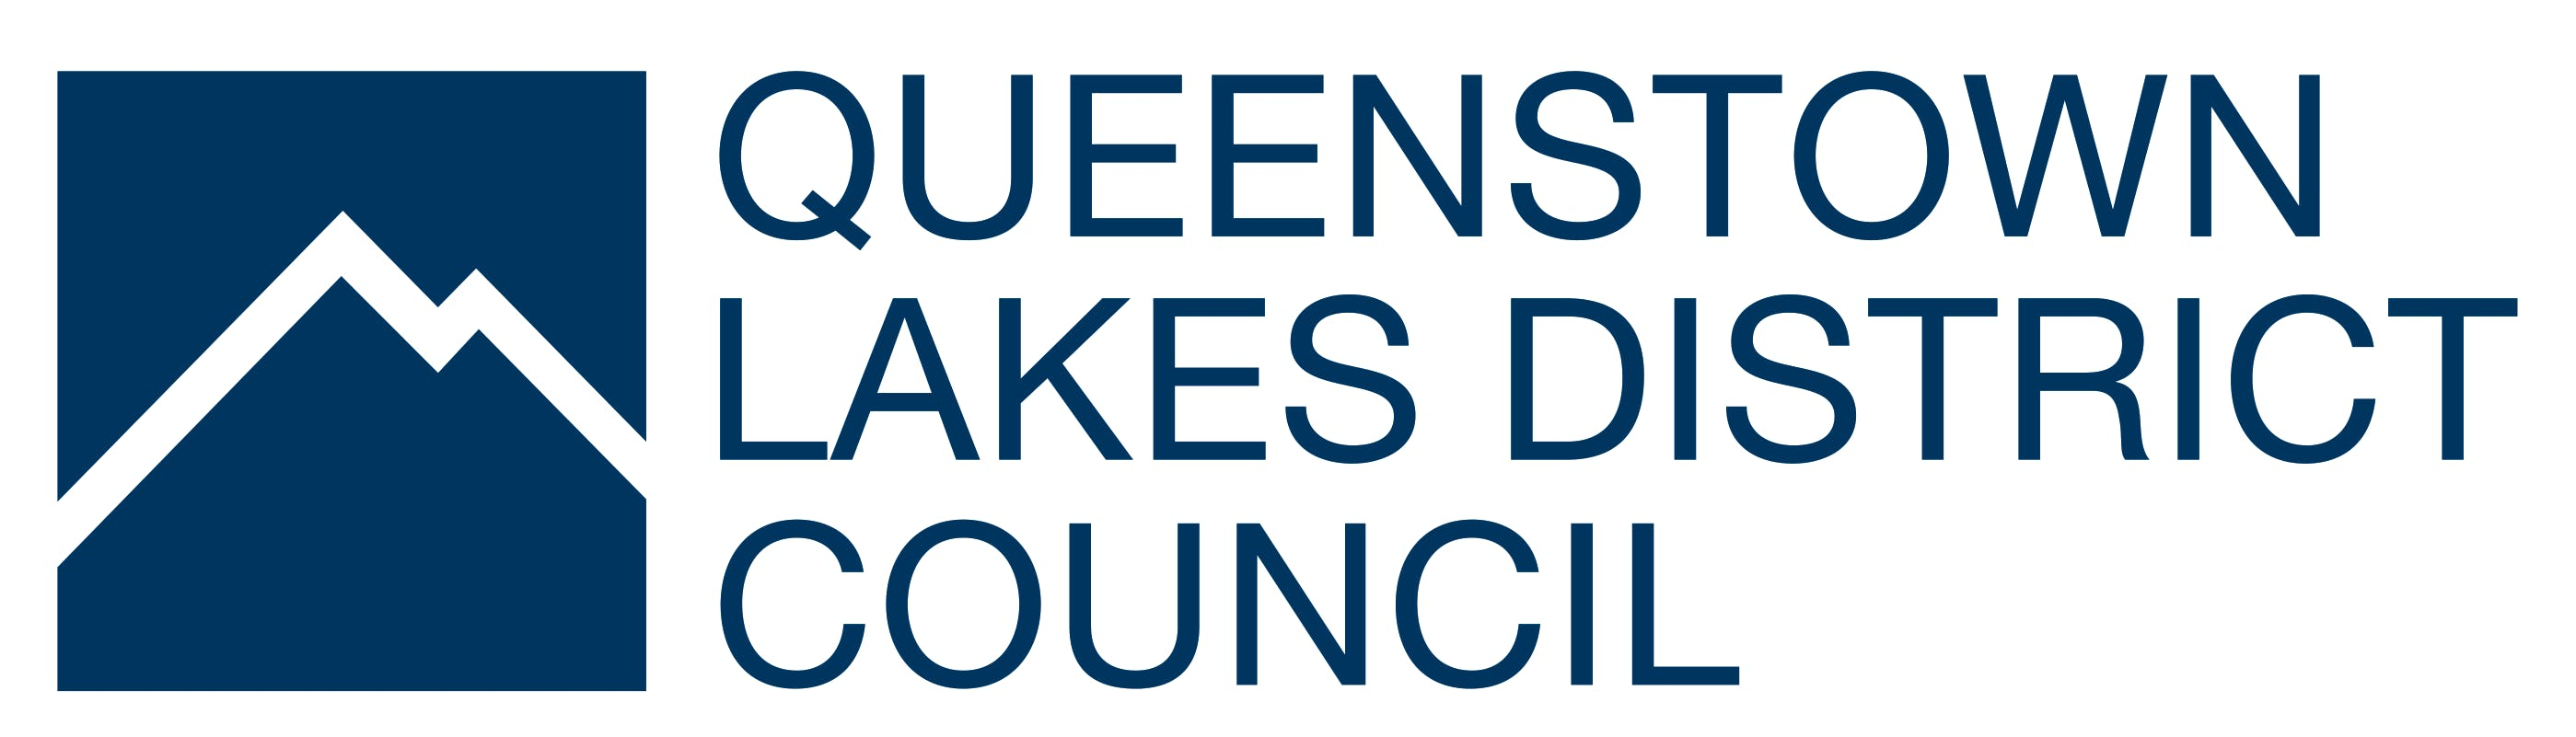 Let's Talk Queenstown Lakes District Council